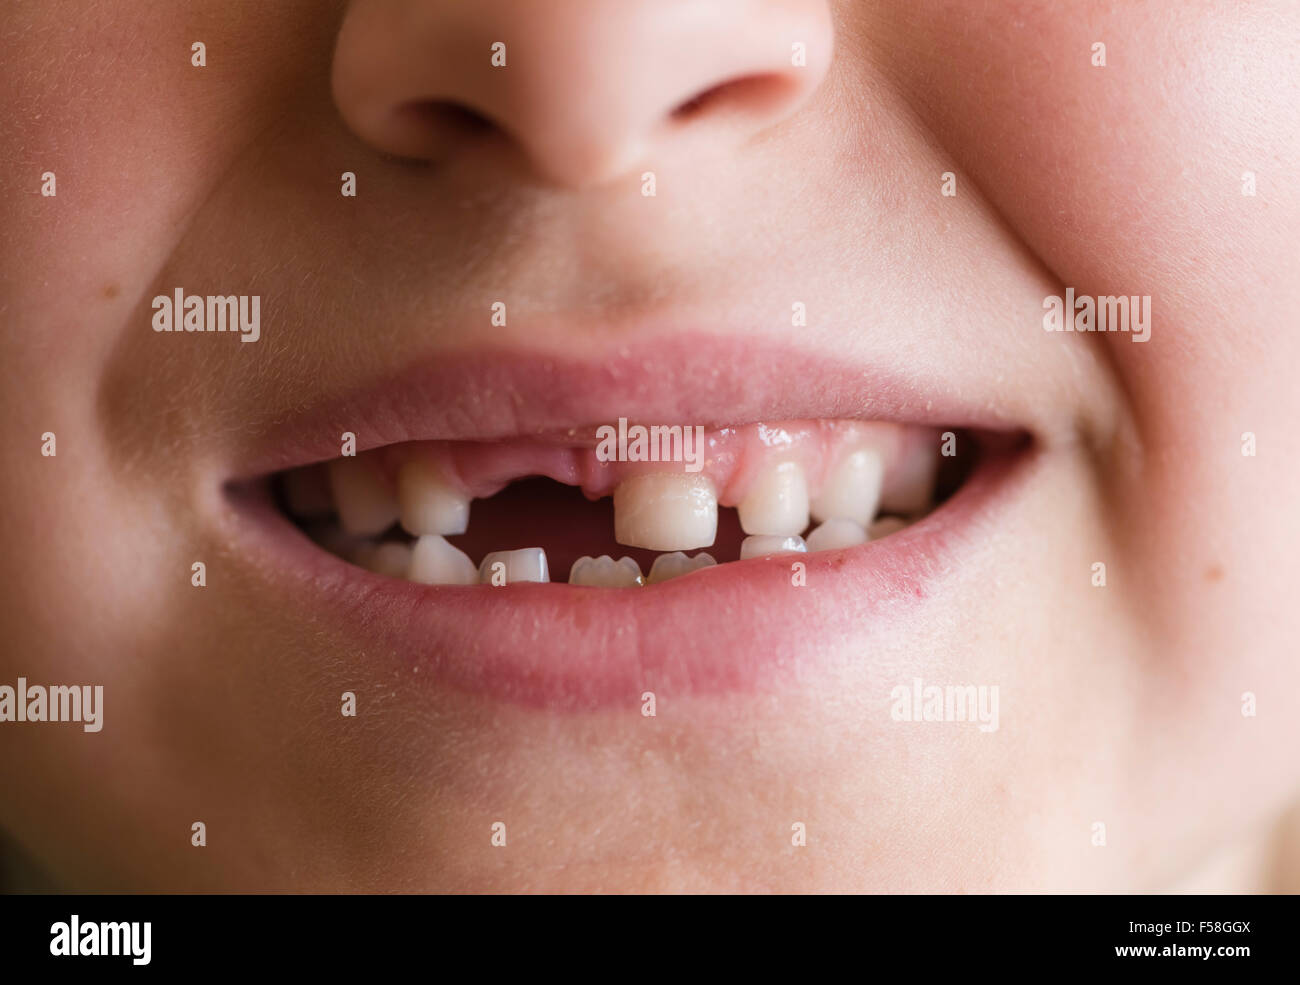 Gap-toothed primary dentition of a 7-year old boy - Stock Image